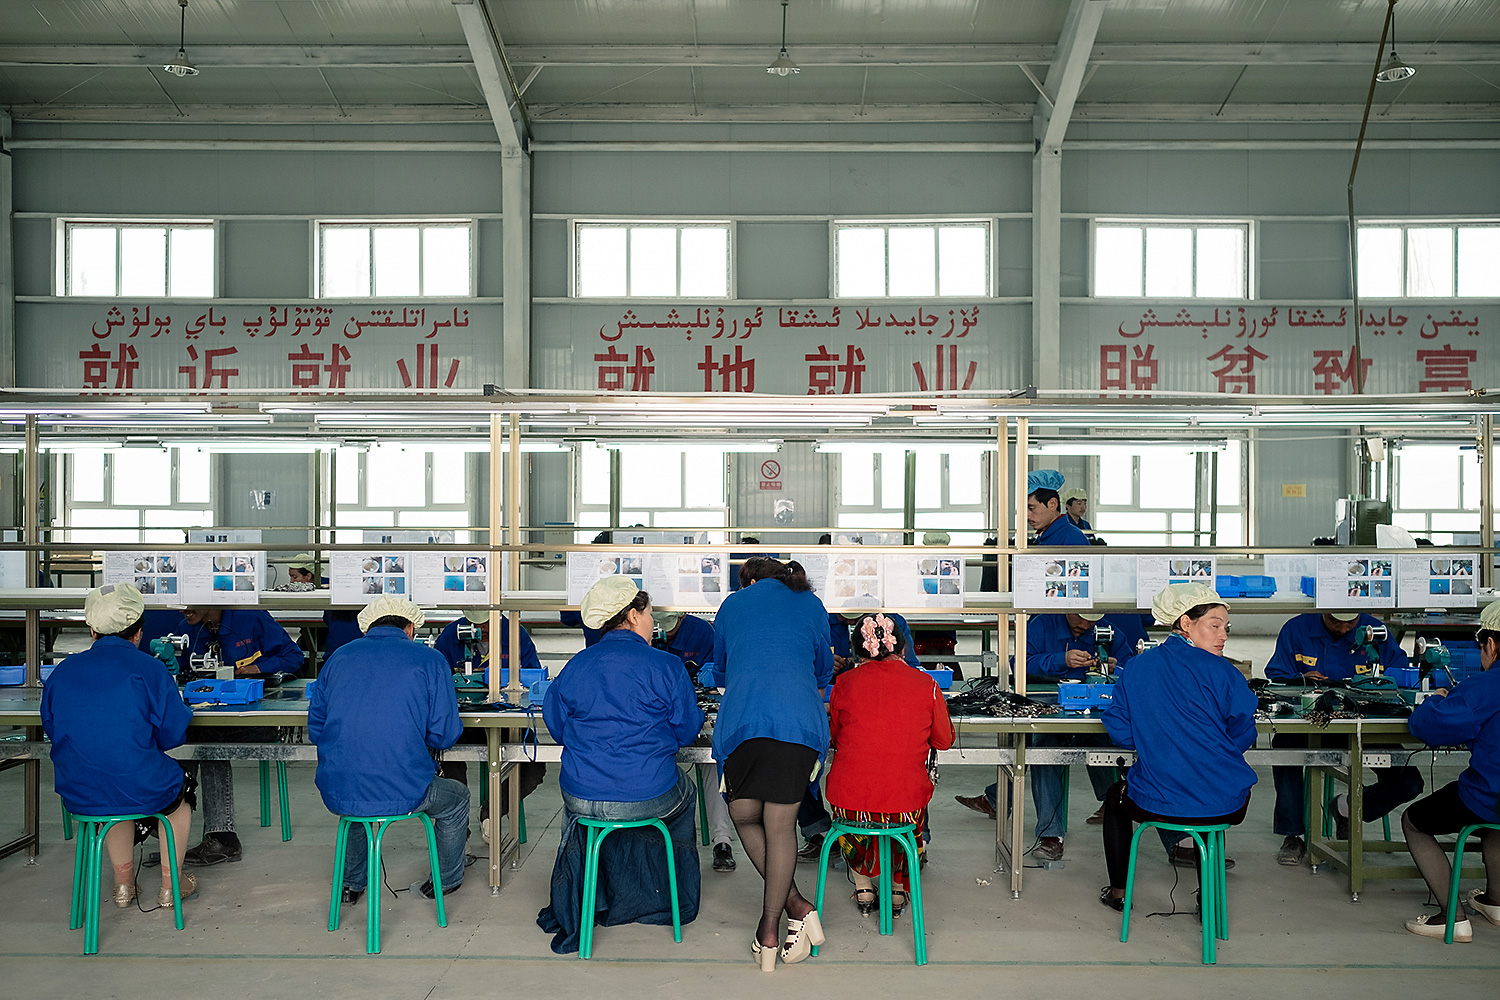 Uighur workers labor at the Guangdong Sike Electronics factory, where local workers earn a monthly salary of 1,500-2,000 yuan (U.S.$200-300)—up to three times more than the average income in nearby villages, and slightly more than the average income in the city of Kashgar.